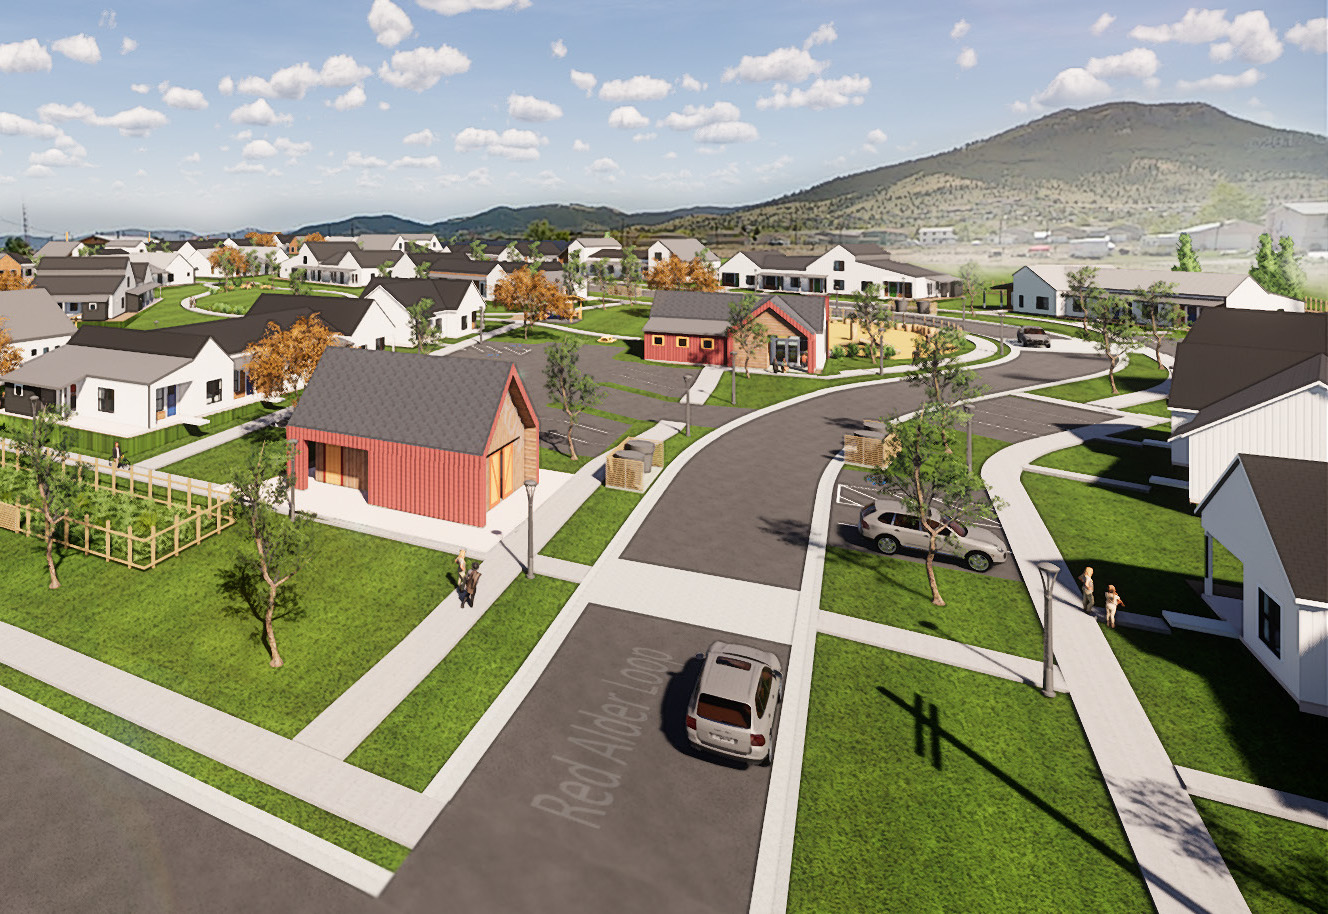 Helena City Commission approves permit for Red Alder affordable housing project